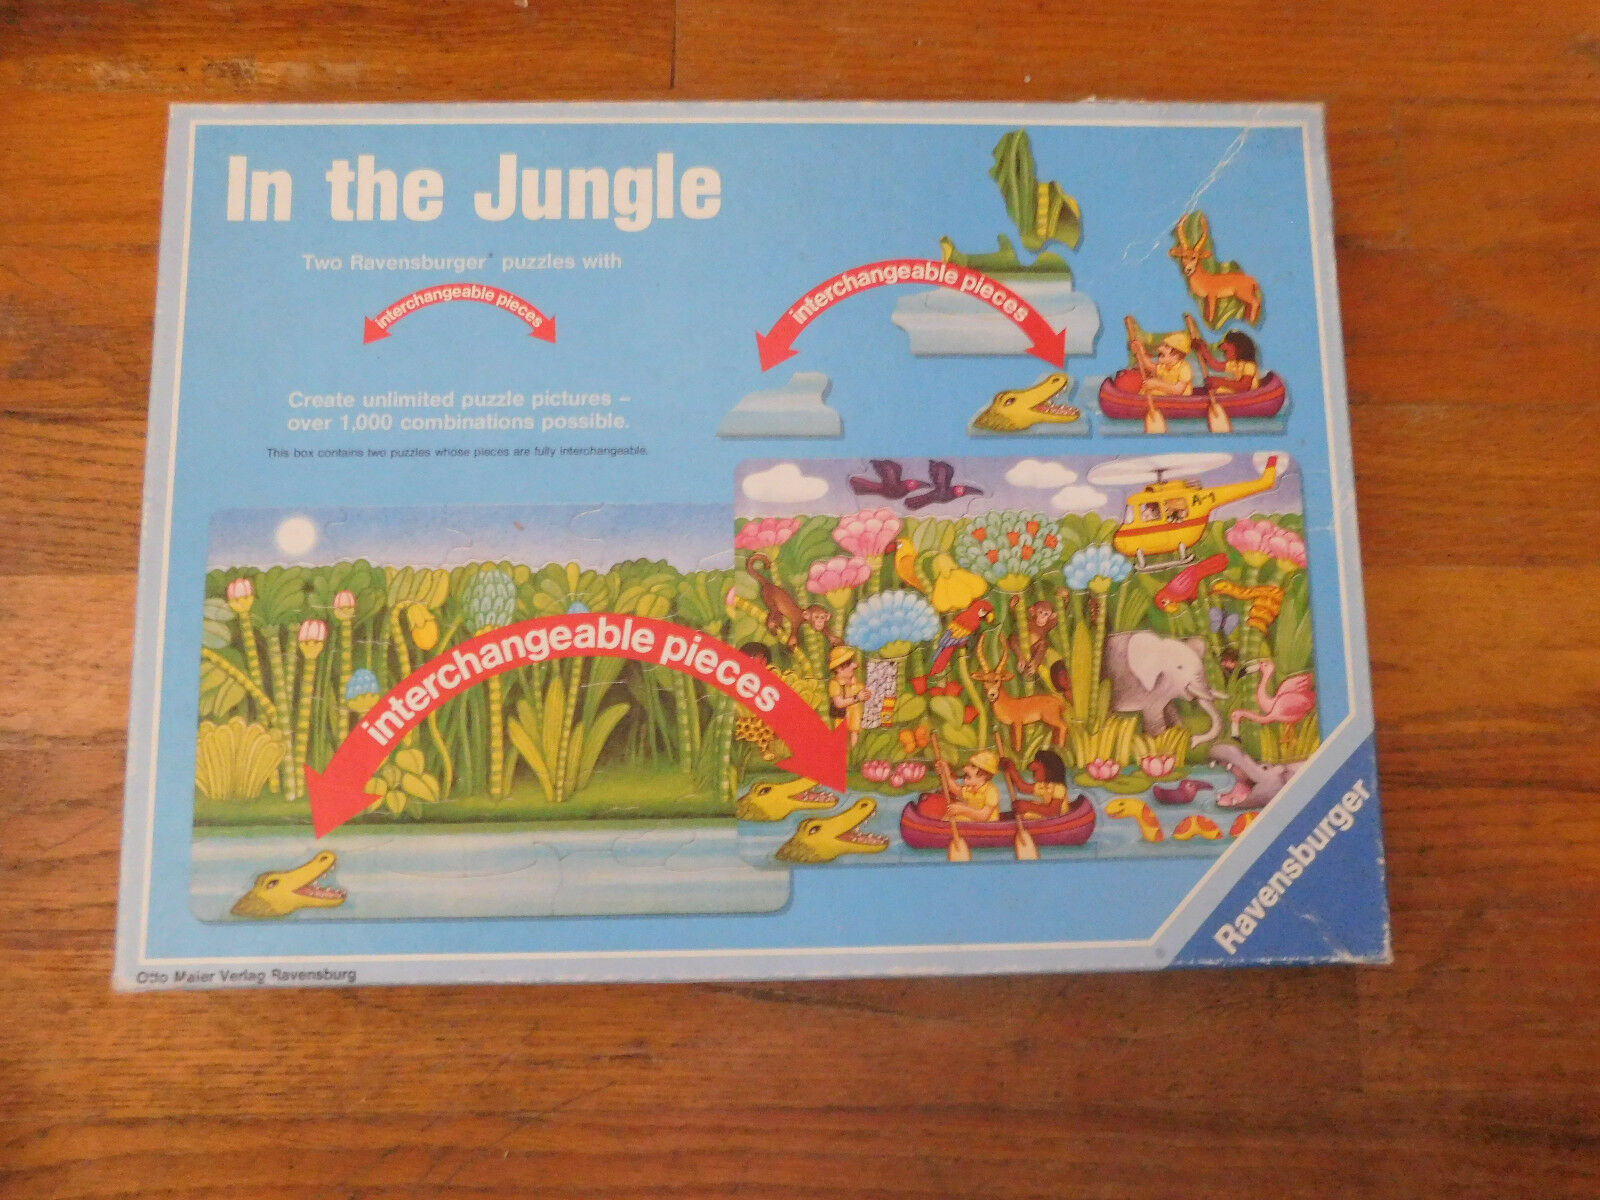 In The Jungle Two Ravensburger puzzles with  interchangeable pieces  prima i clienti